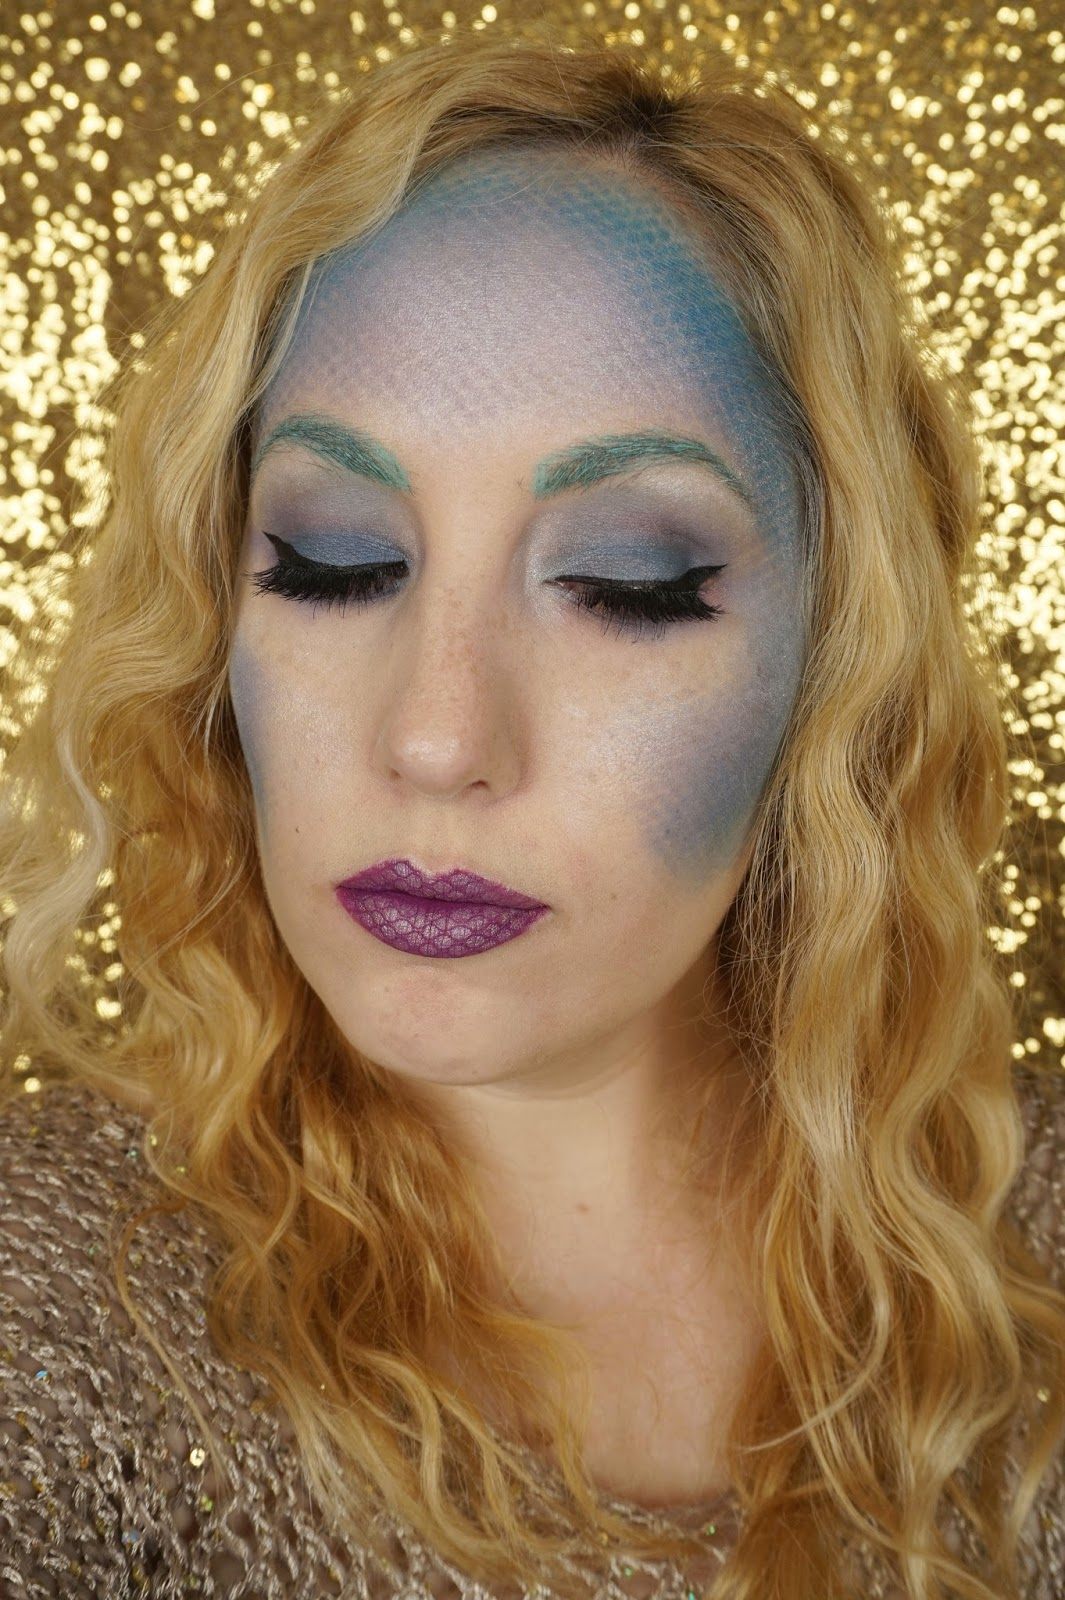 Mermaid Makeup For Halloween